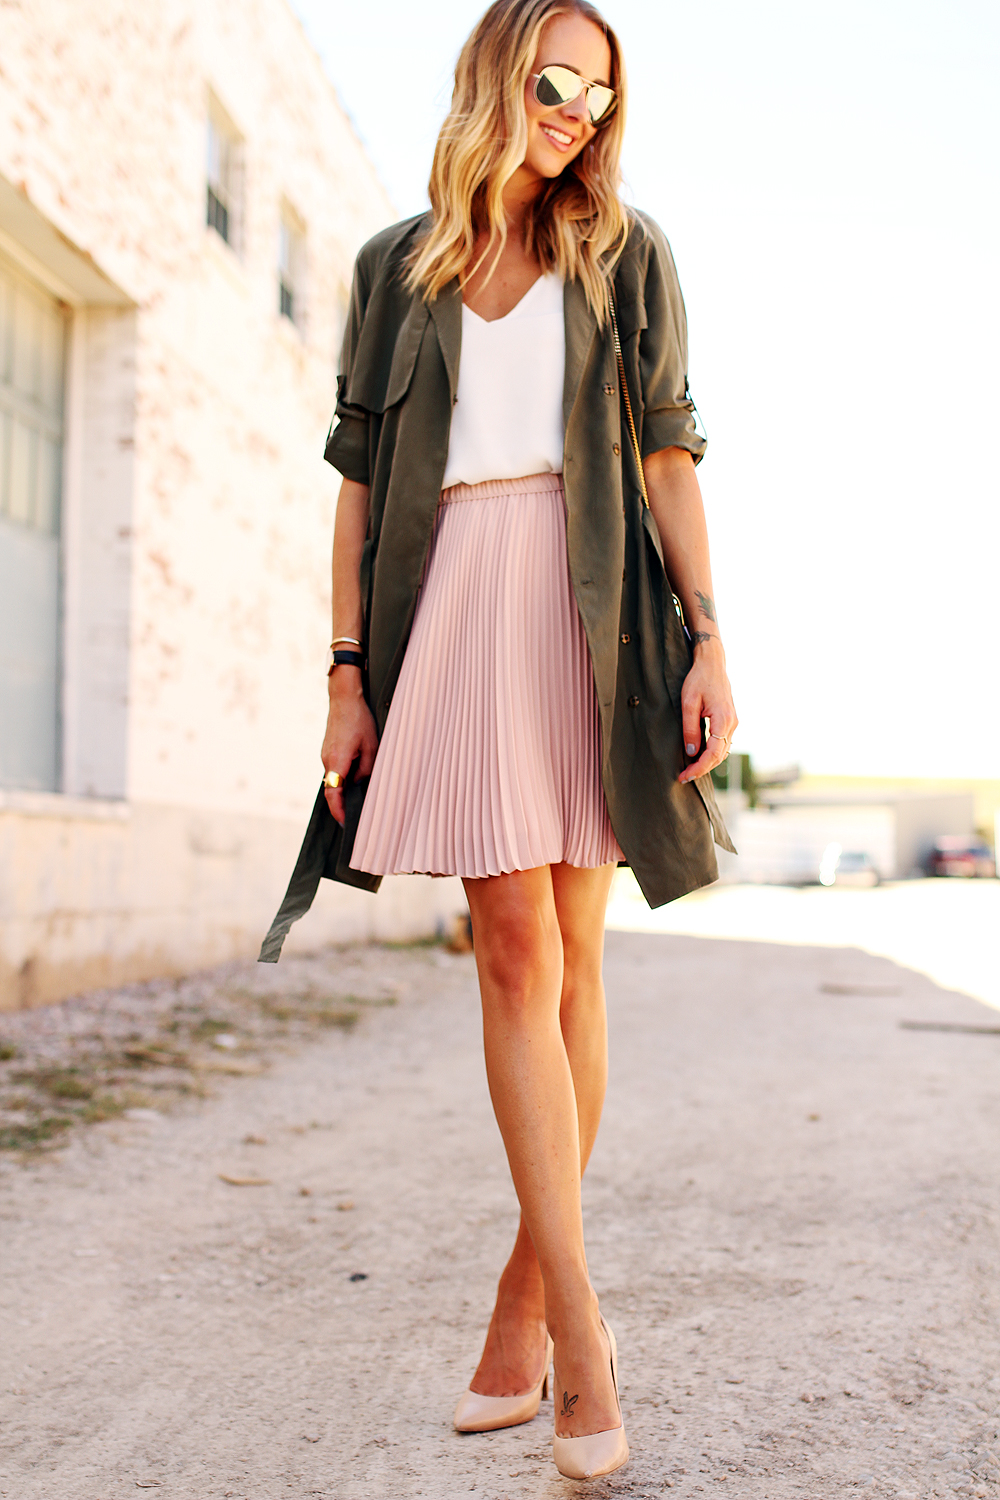 fashion-jackson-banana-republic-blush-pleated-skirt-banana-republic-trench-dress-white-tank-nude-pumps-rayban-silver-aviator-sunglasses